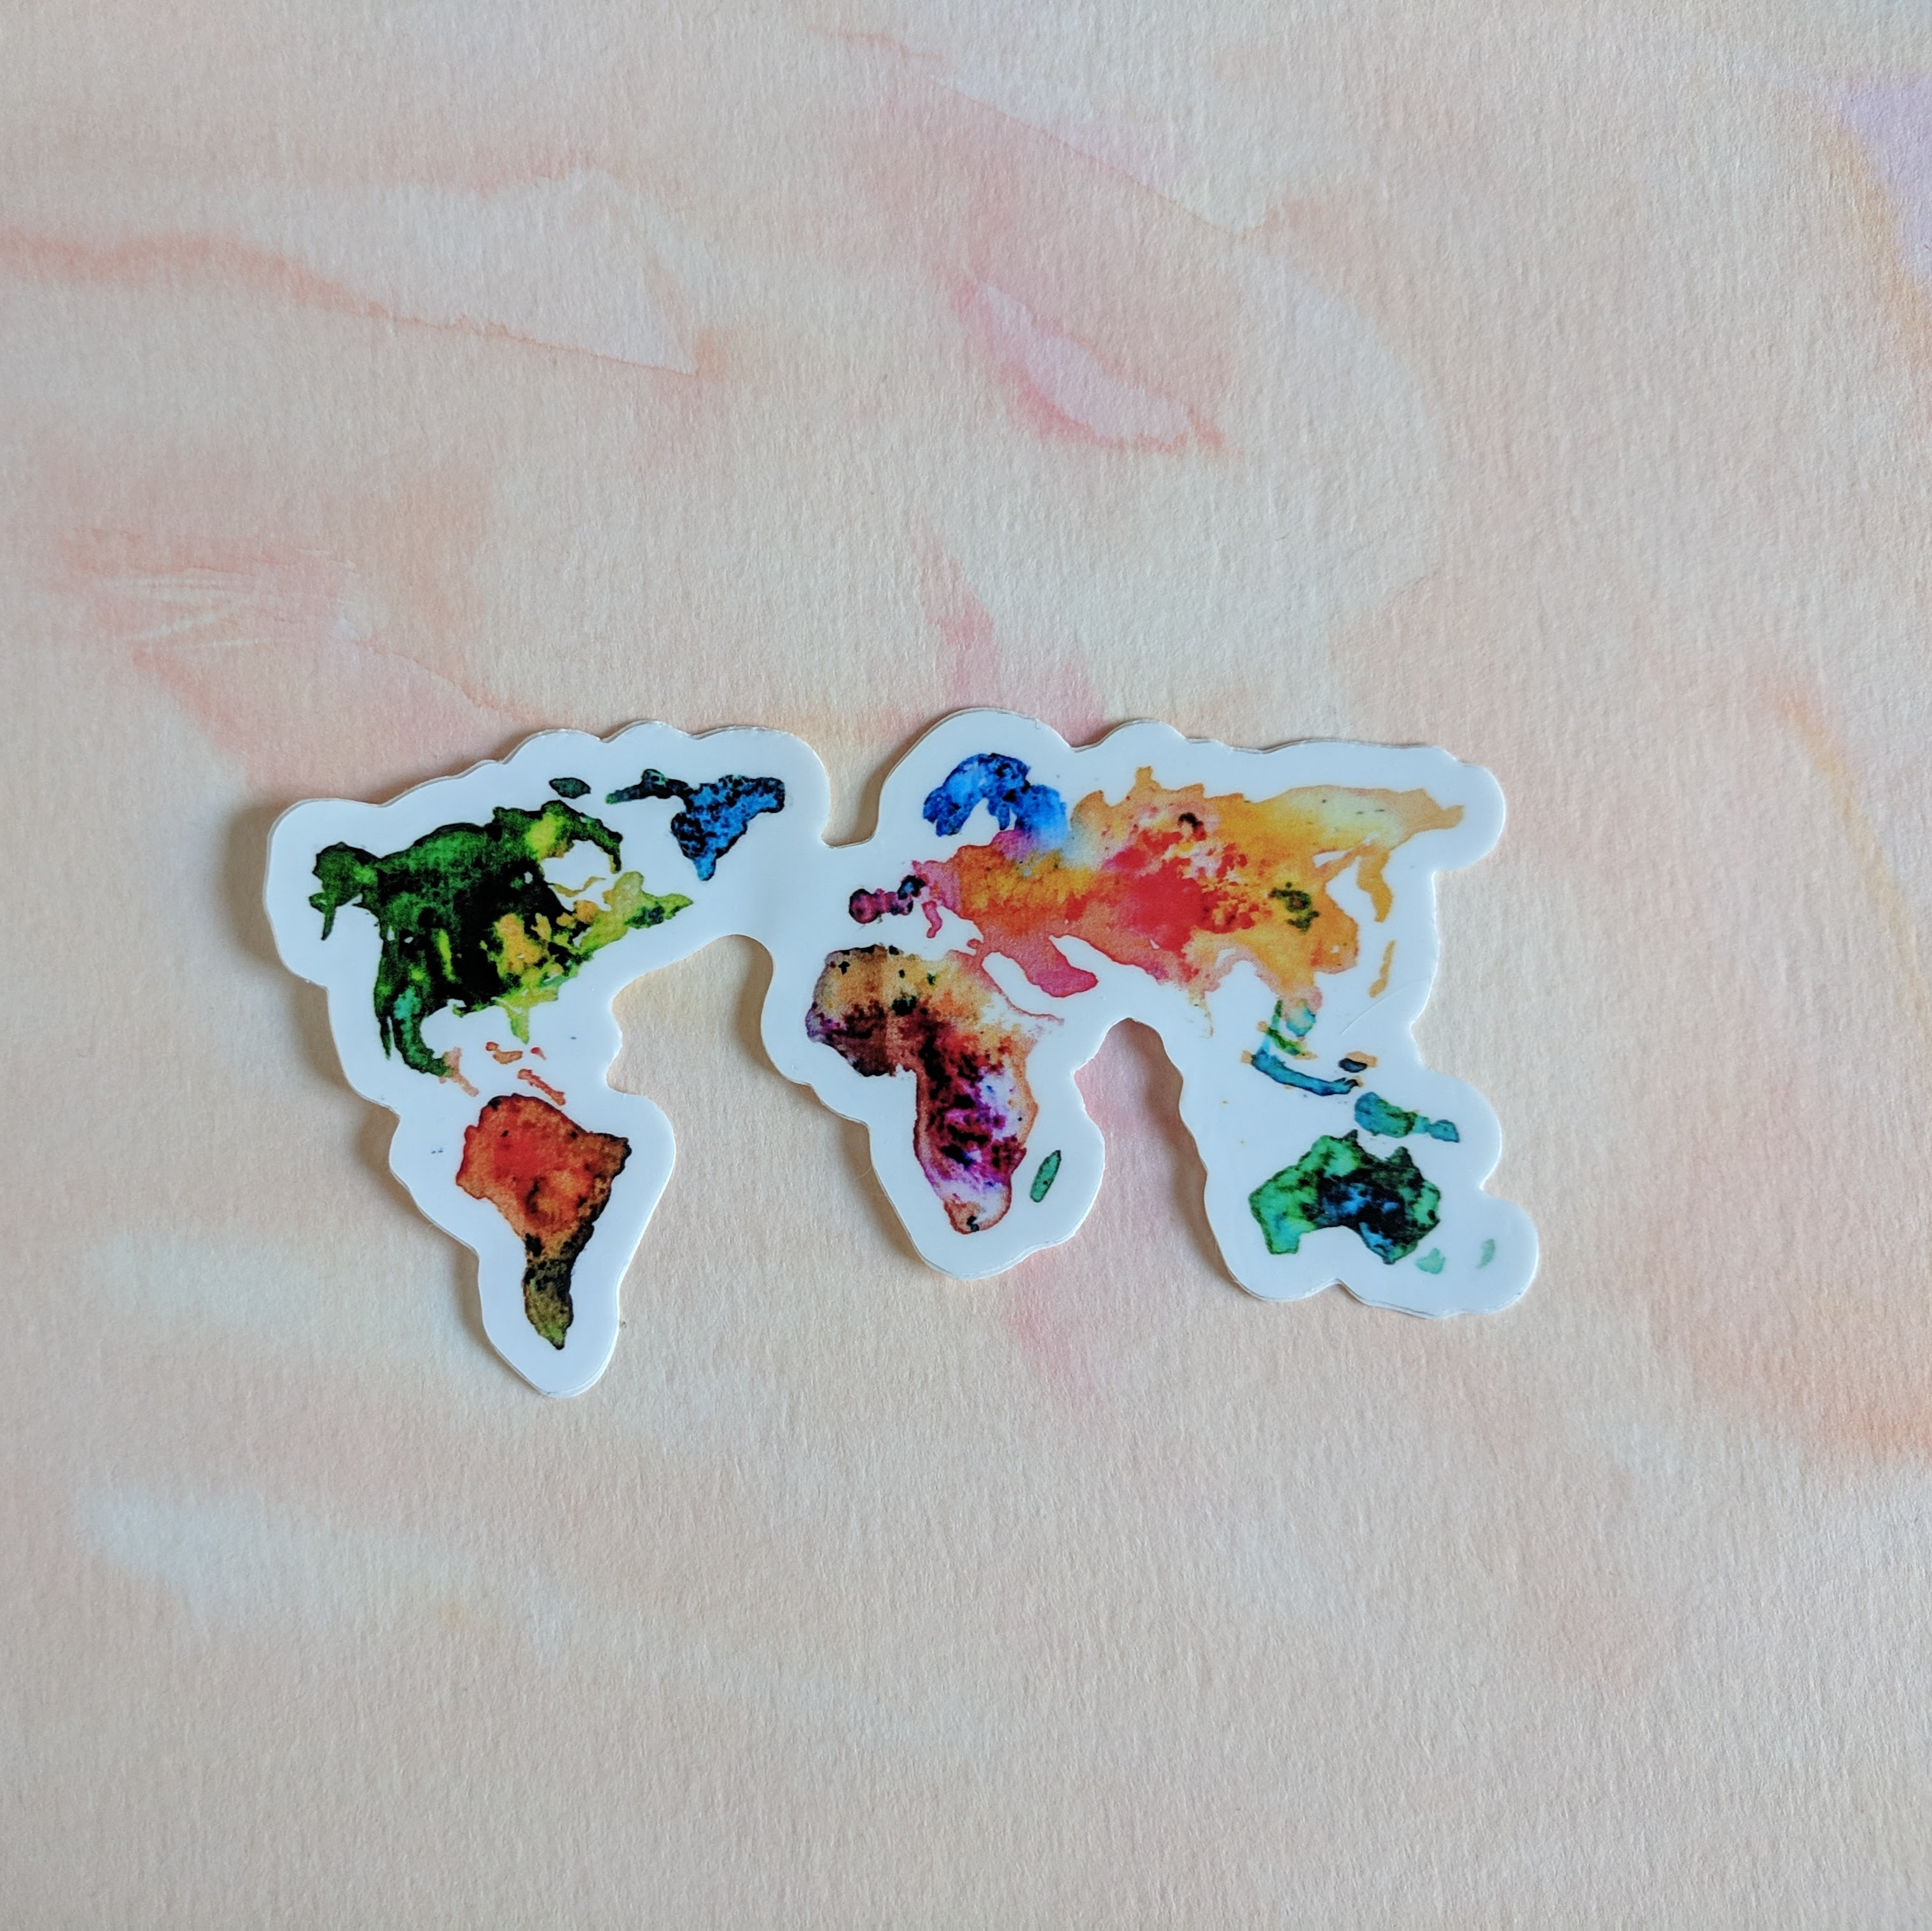 Watercolor World Map - Durable Vinyl Sticker of Map of the World for Travelers - Bujo - Planner Sticker 1133